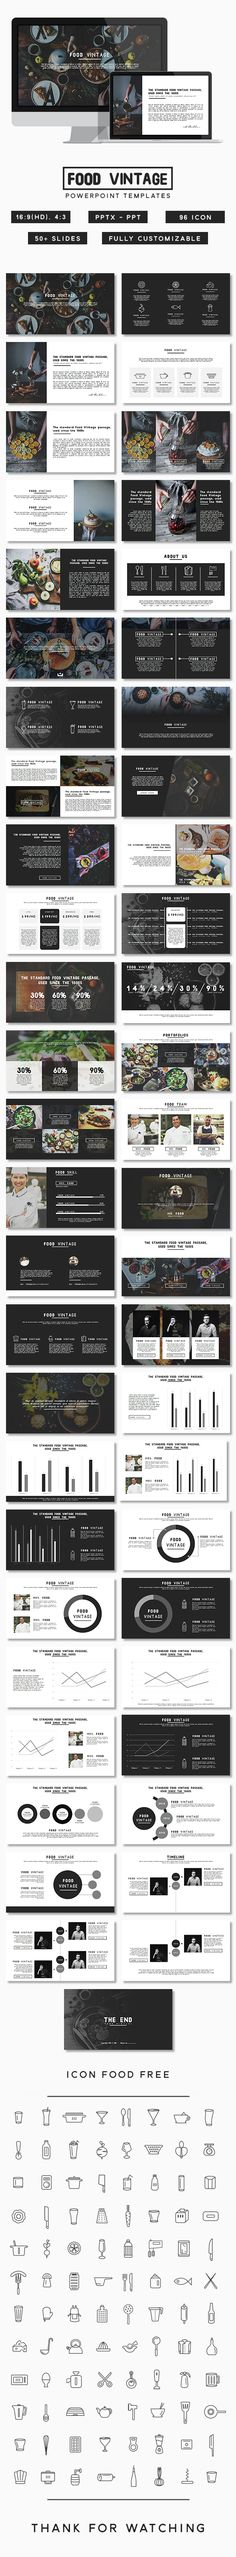 Food Vintage Presentation (PowerPoint Templates)